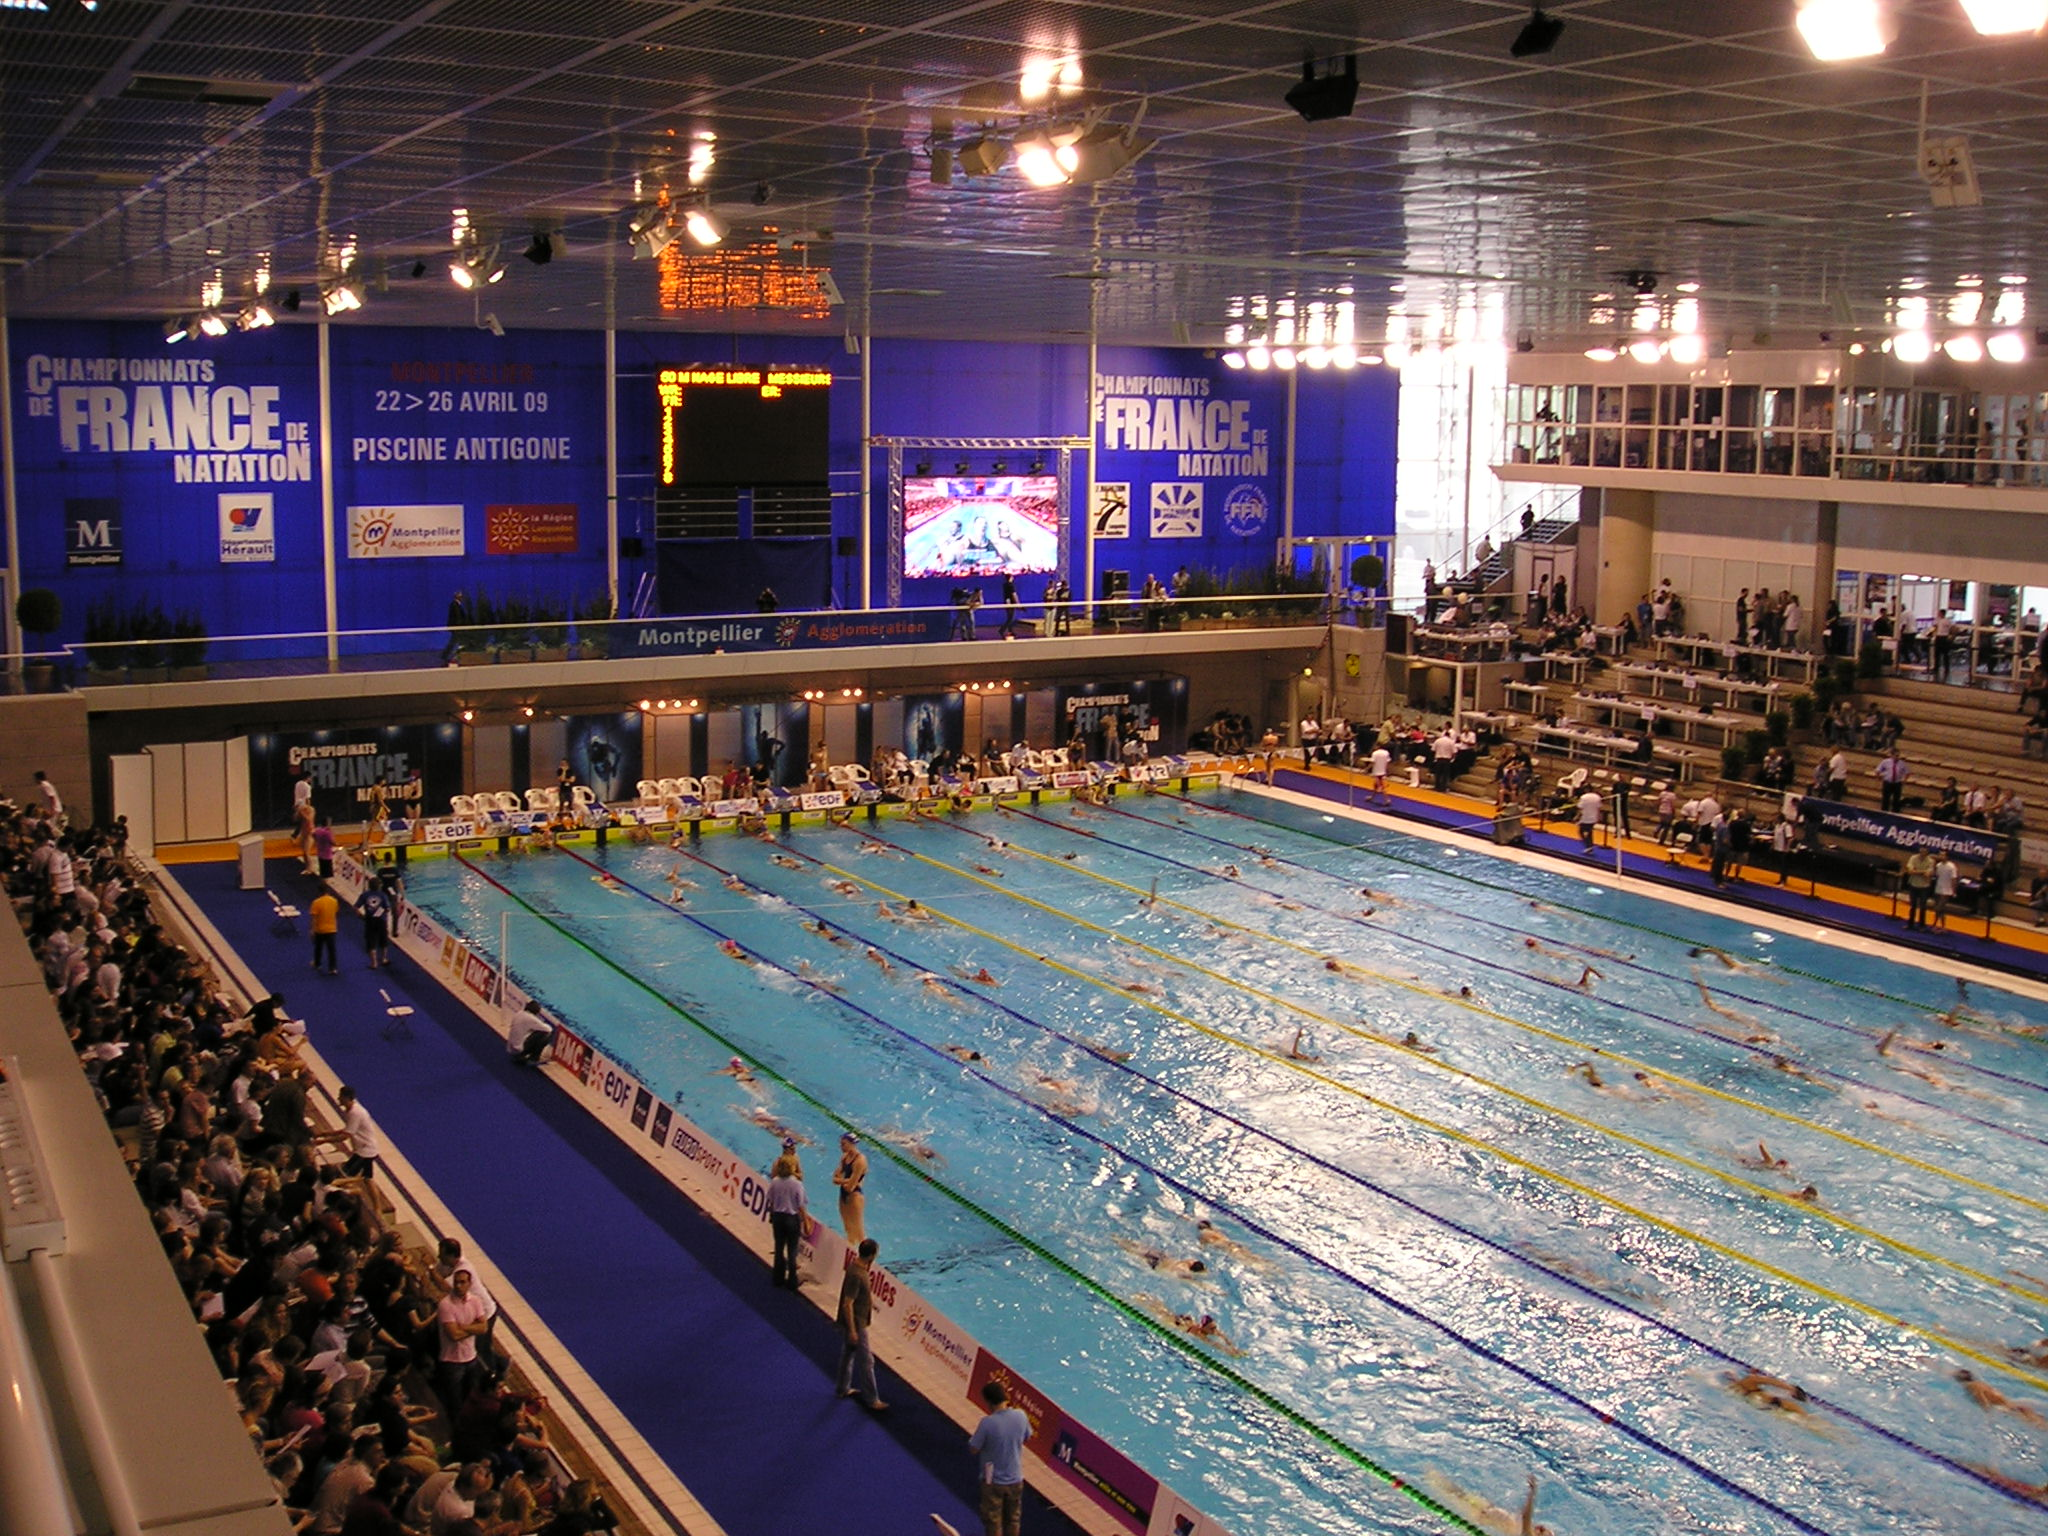 Montpellier piscine olympique d 39 antigone 2 000 piscines for Piscine montpellier